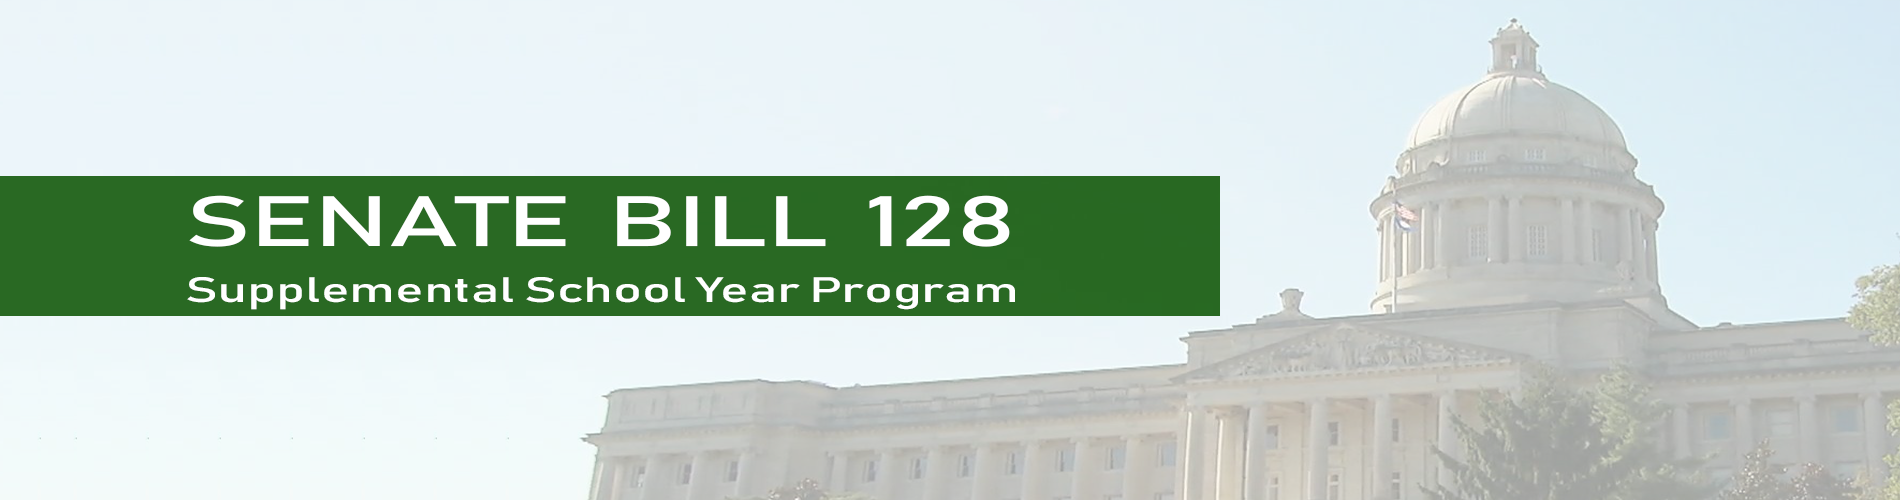 Senate Bill 128:  Supplemental School Year Program